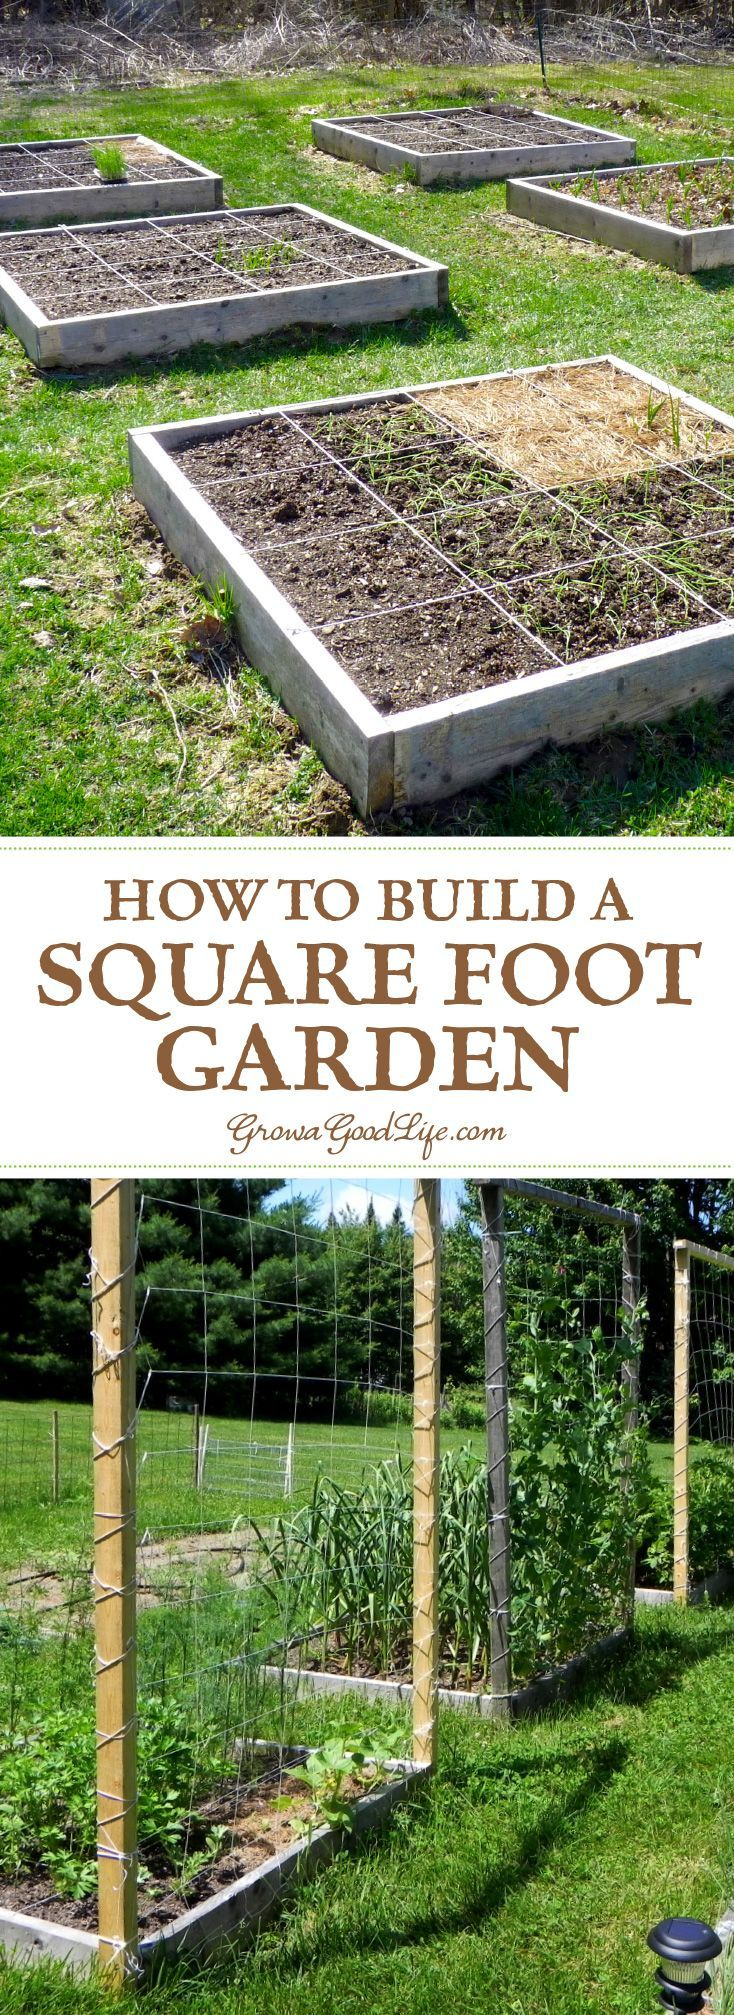 How to Build a Square Foot Garden Square foot gardening Square